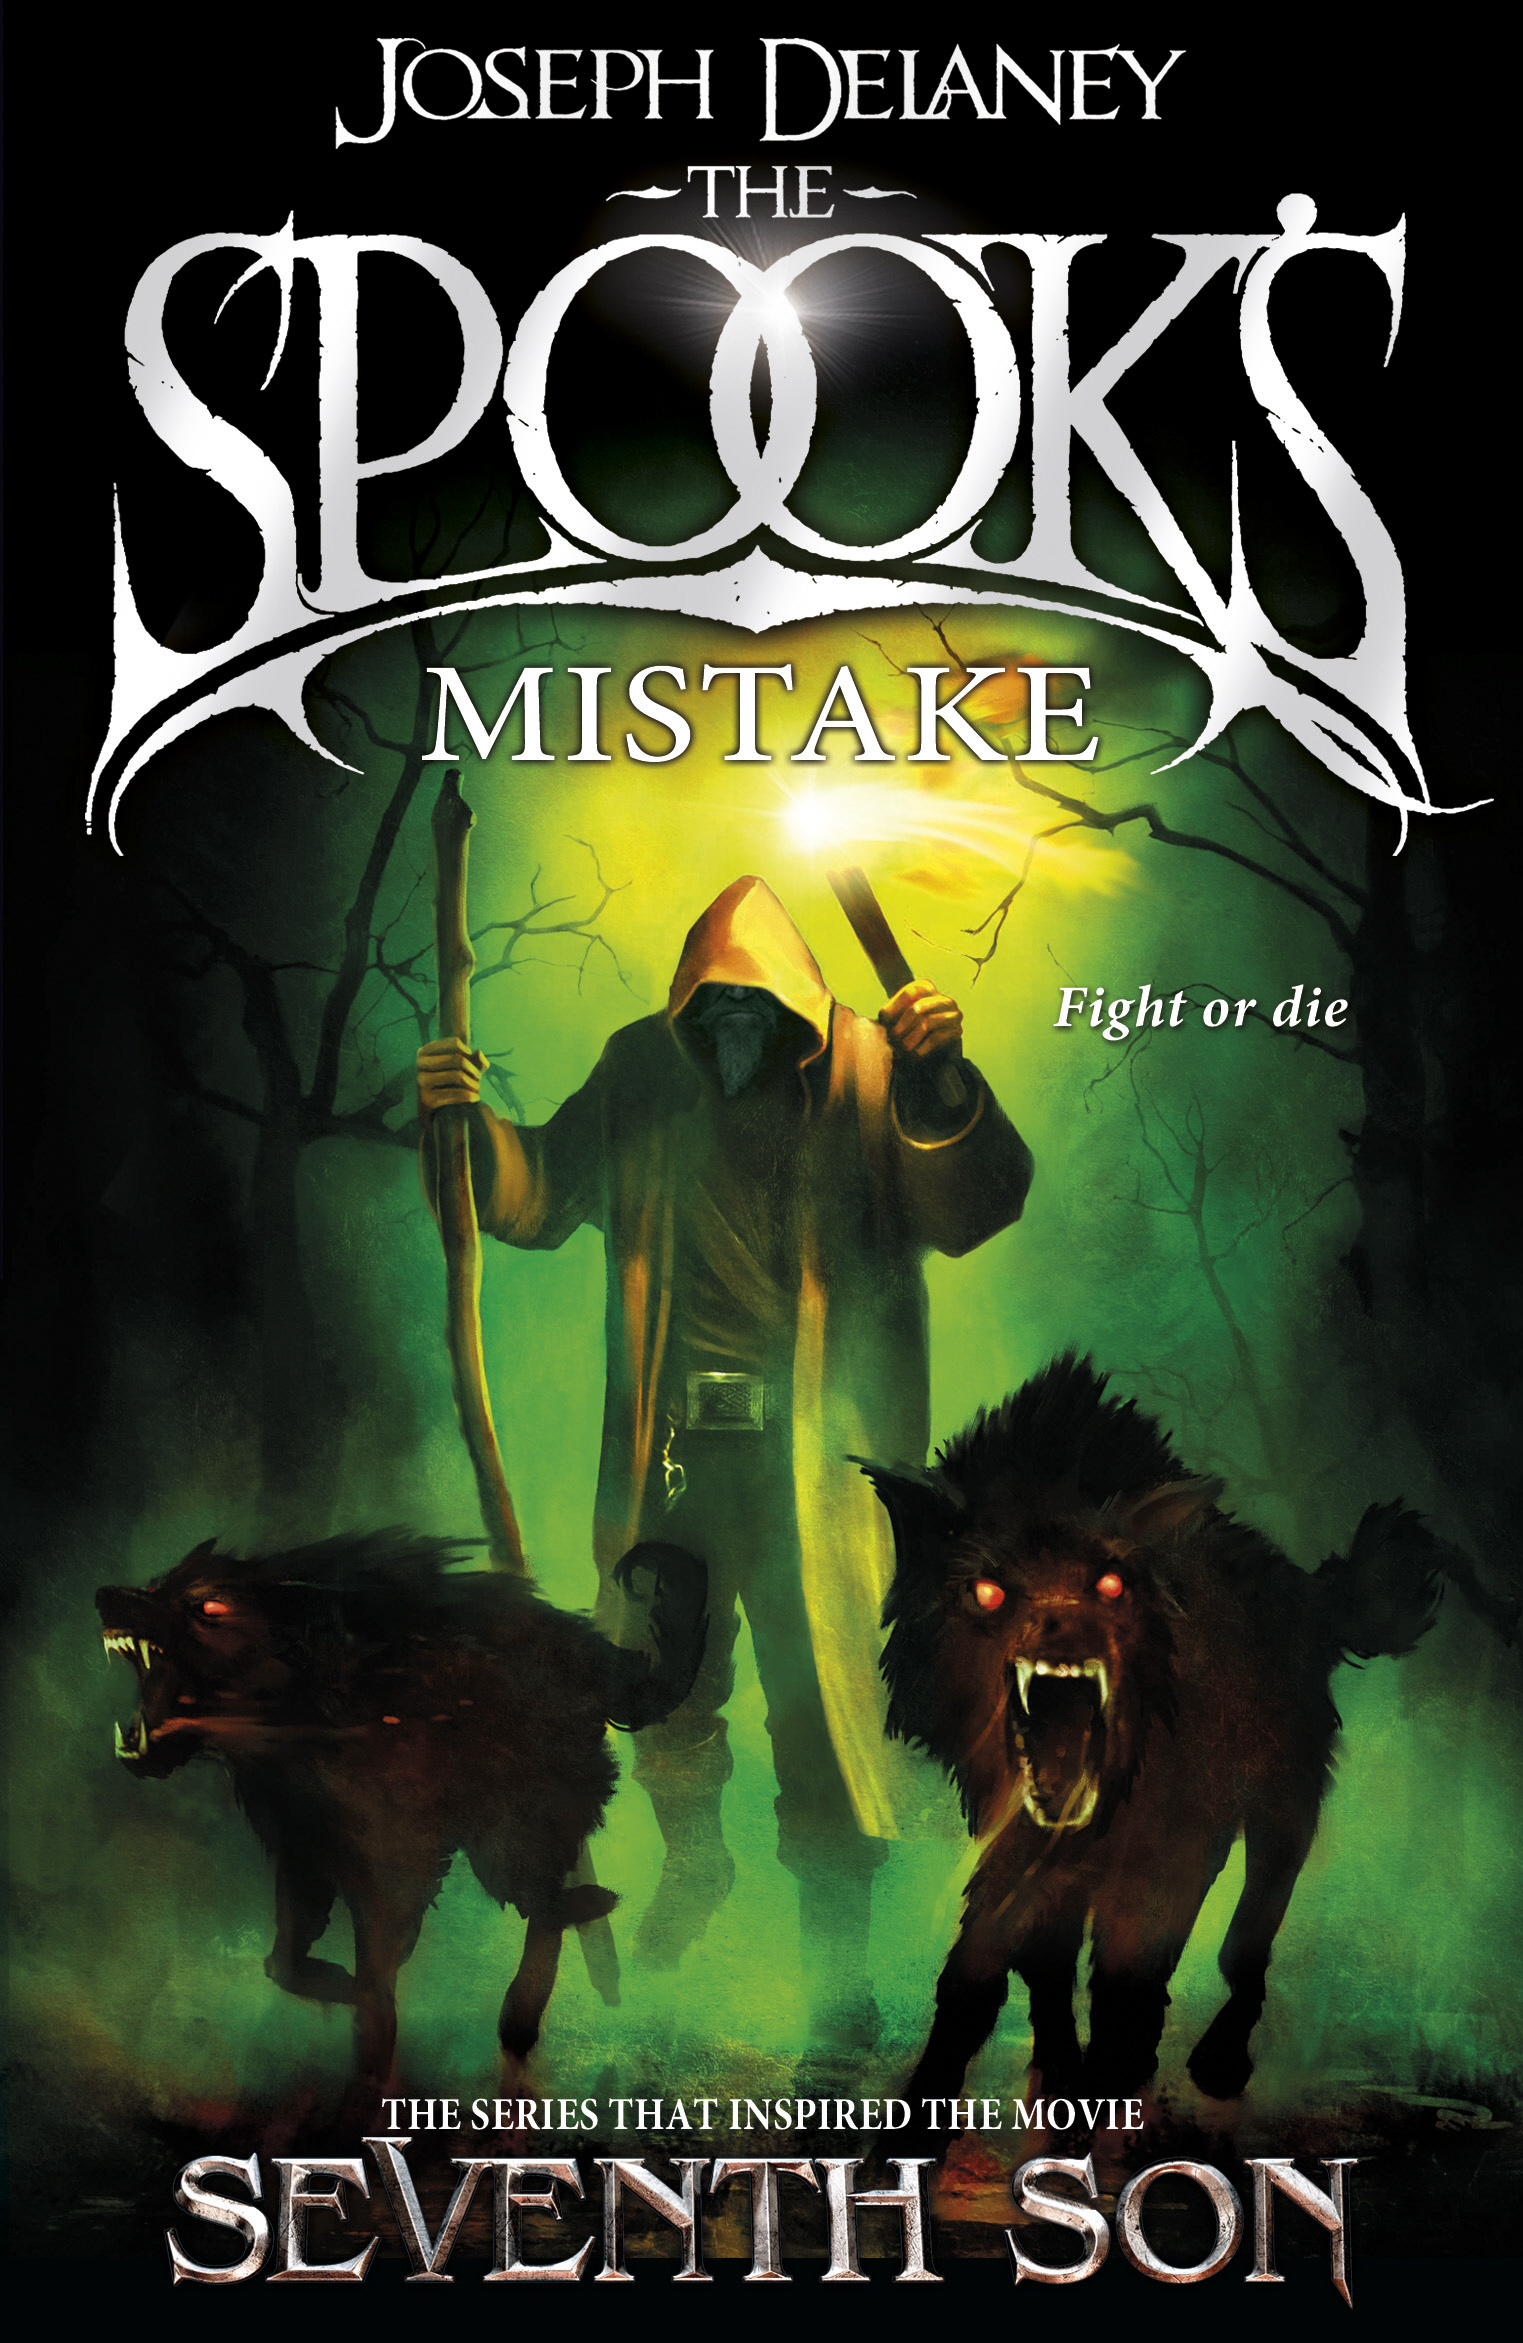 The Spook's Mistake Book 5